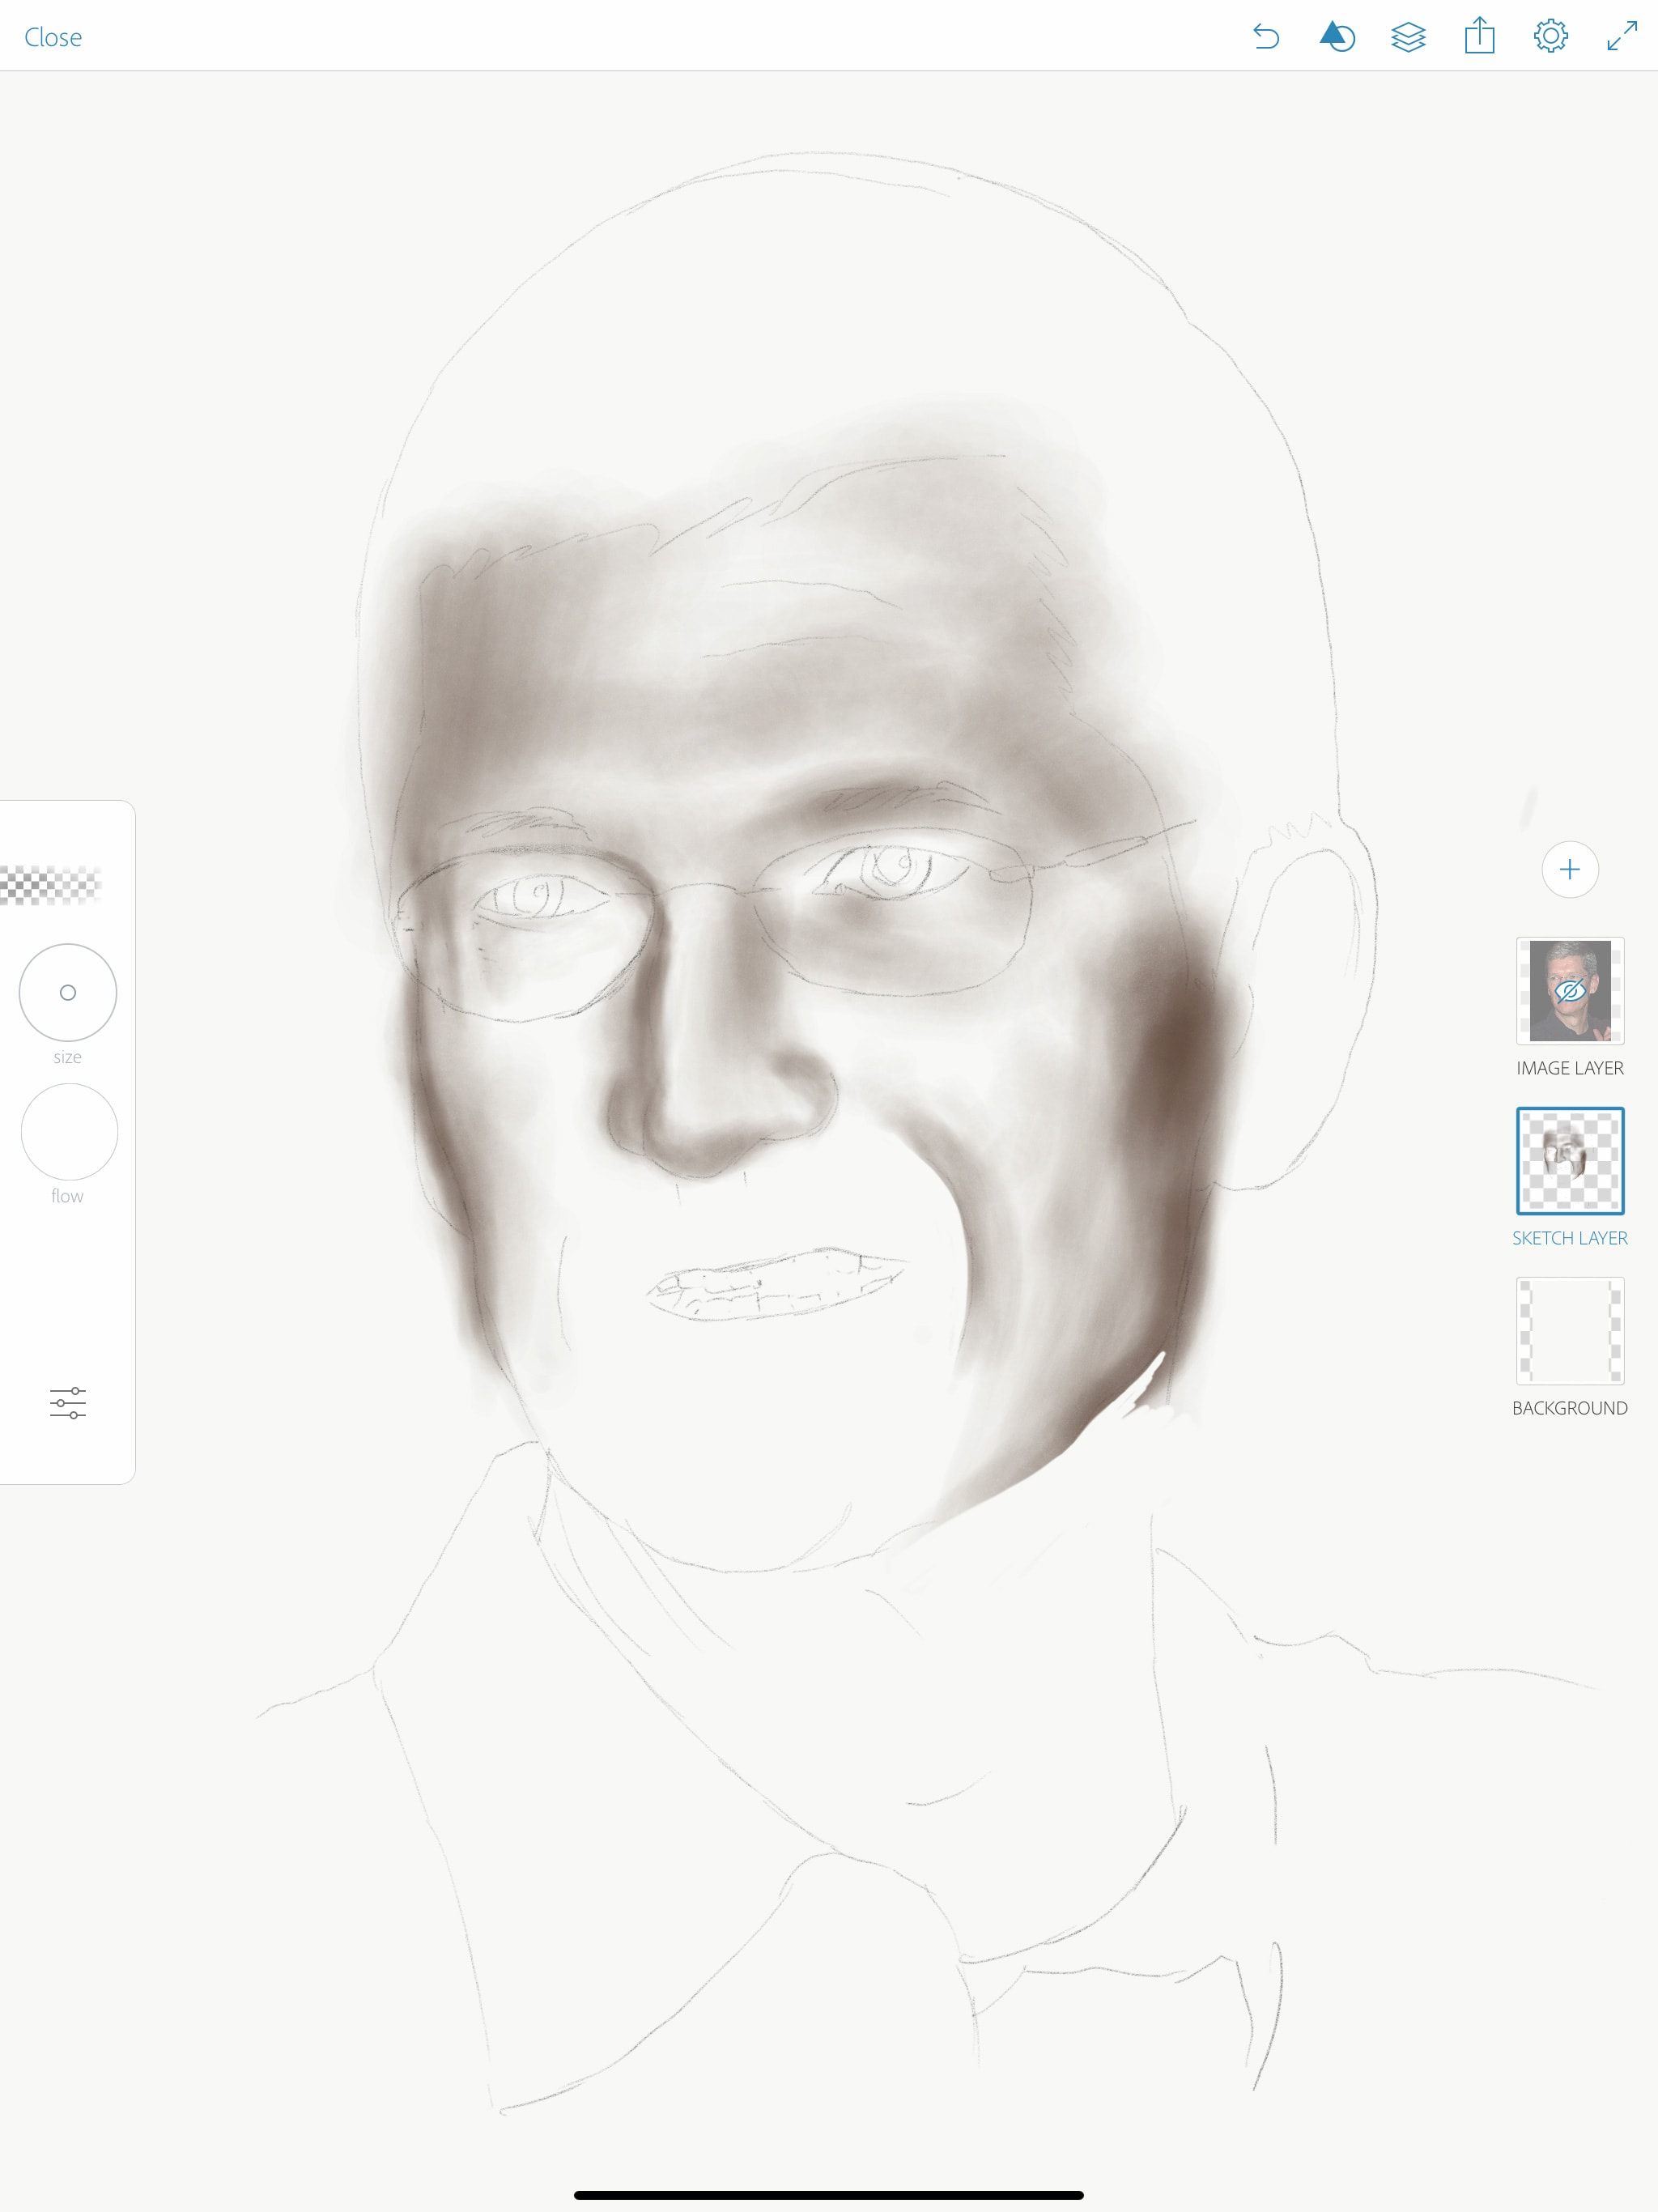 Apple pencil portrait drawing step 2 add shadow and highlight